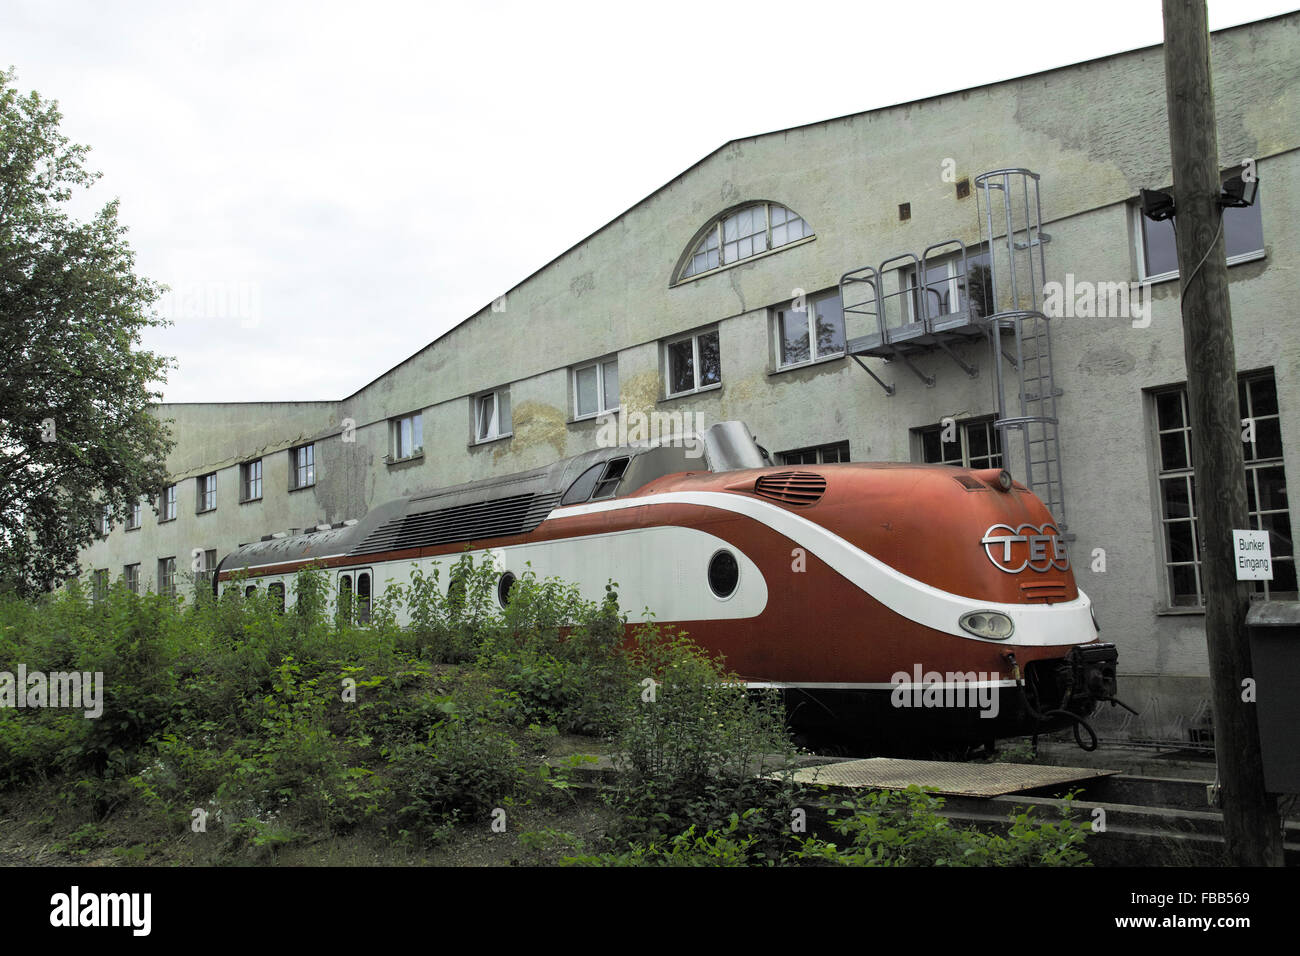 Trans-Europe Express (TEE) awaiting restoration - Stock Image